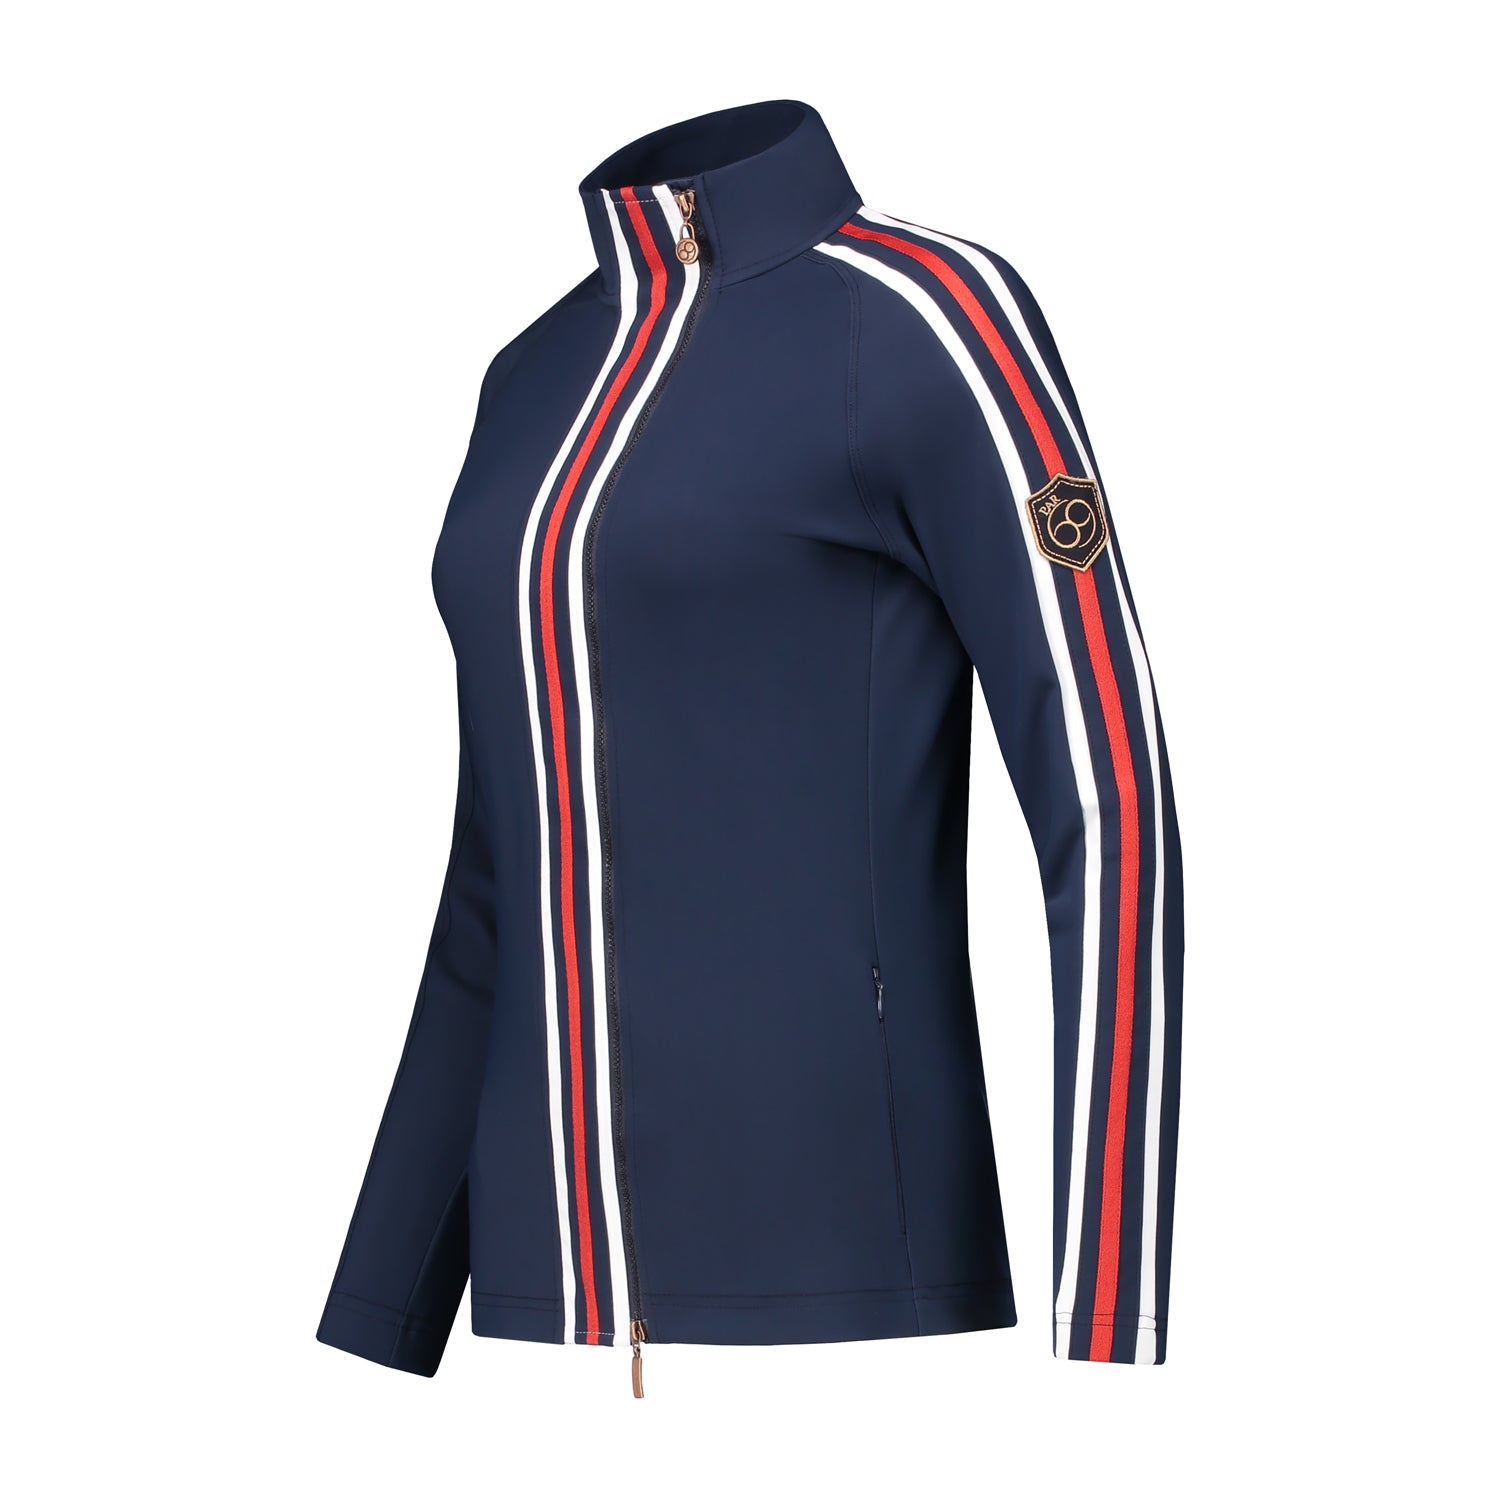 Borg jacket in navy blue with white and red